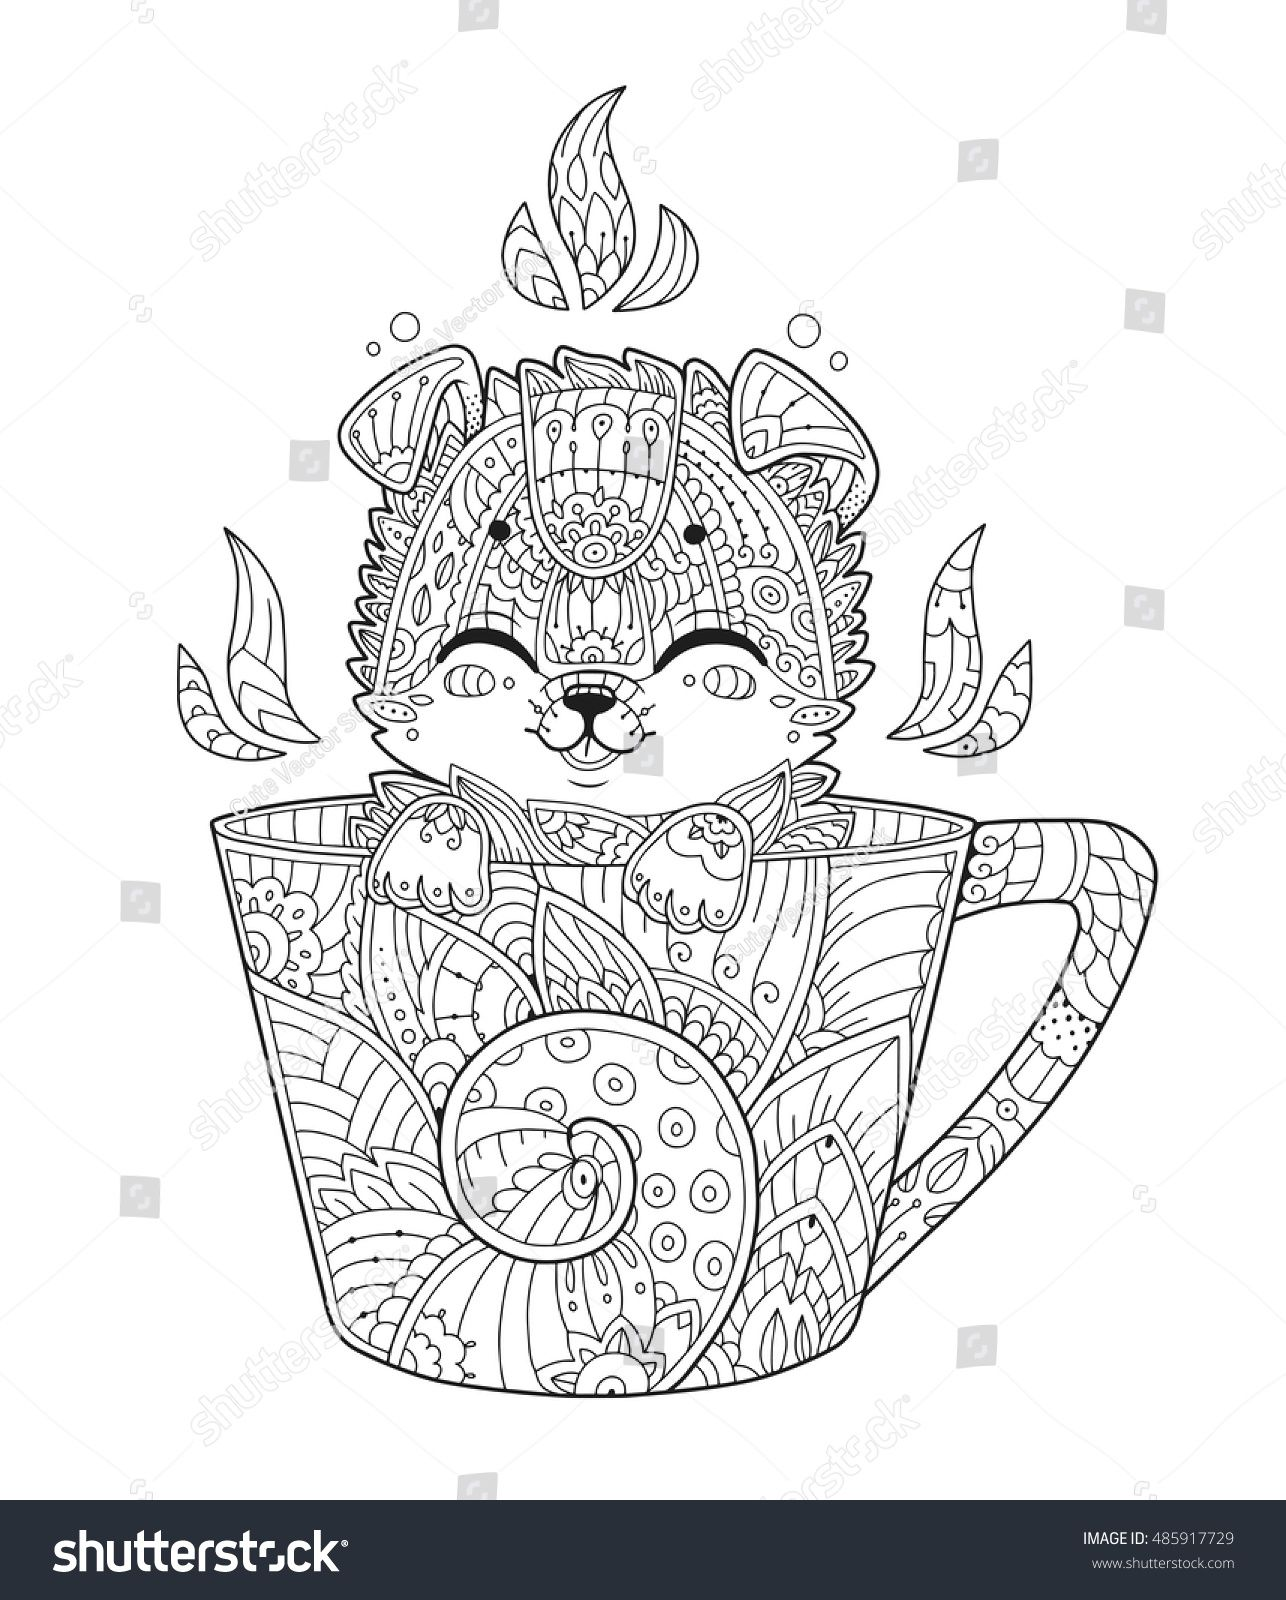 Puppy In Cup Adult Antistress Coloring Page With Dog In